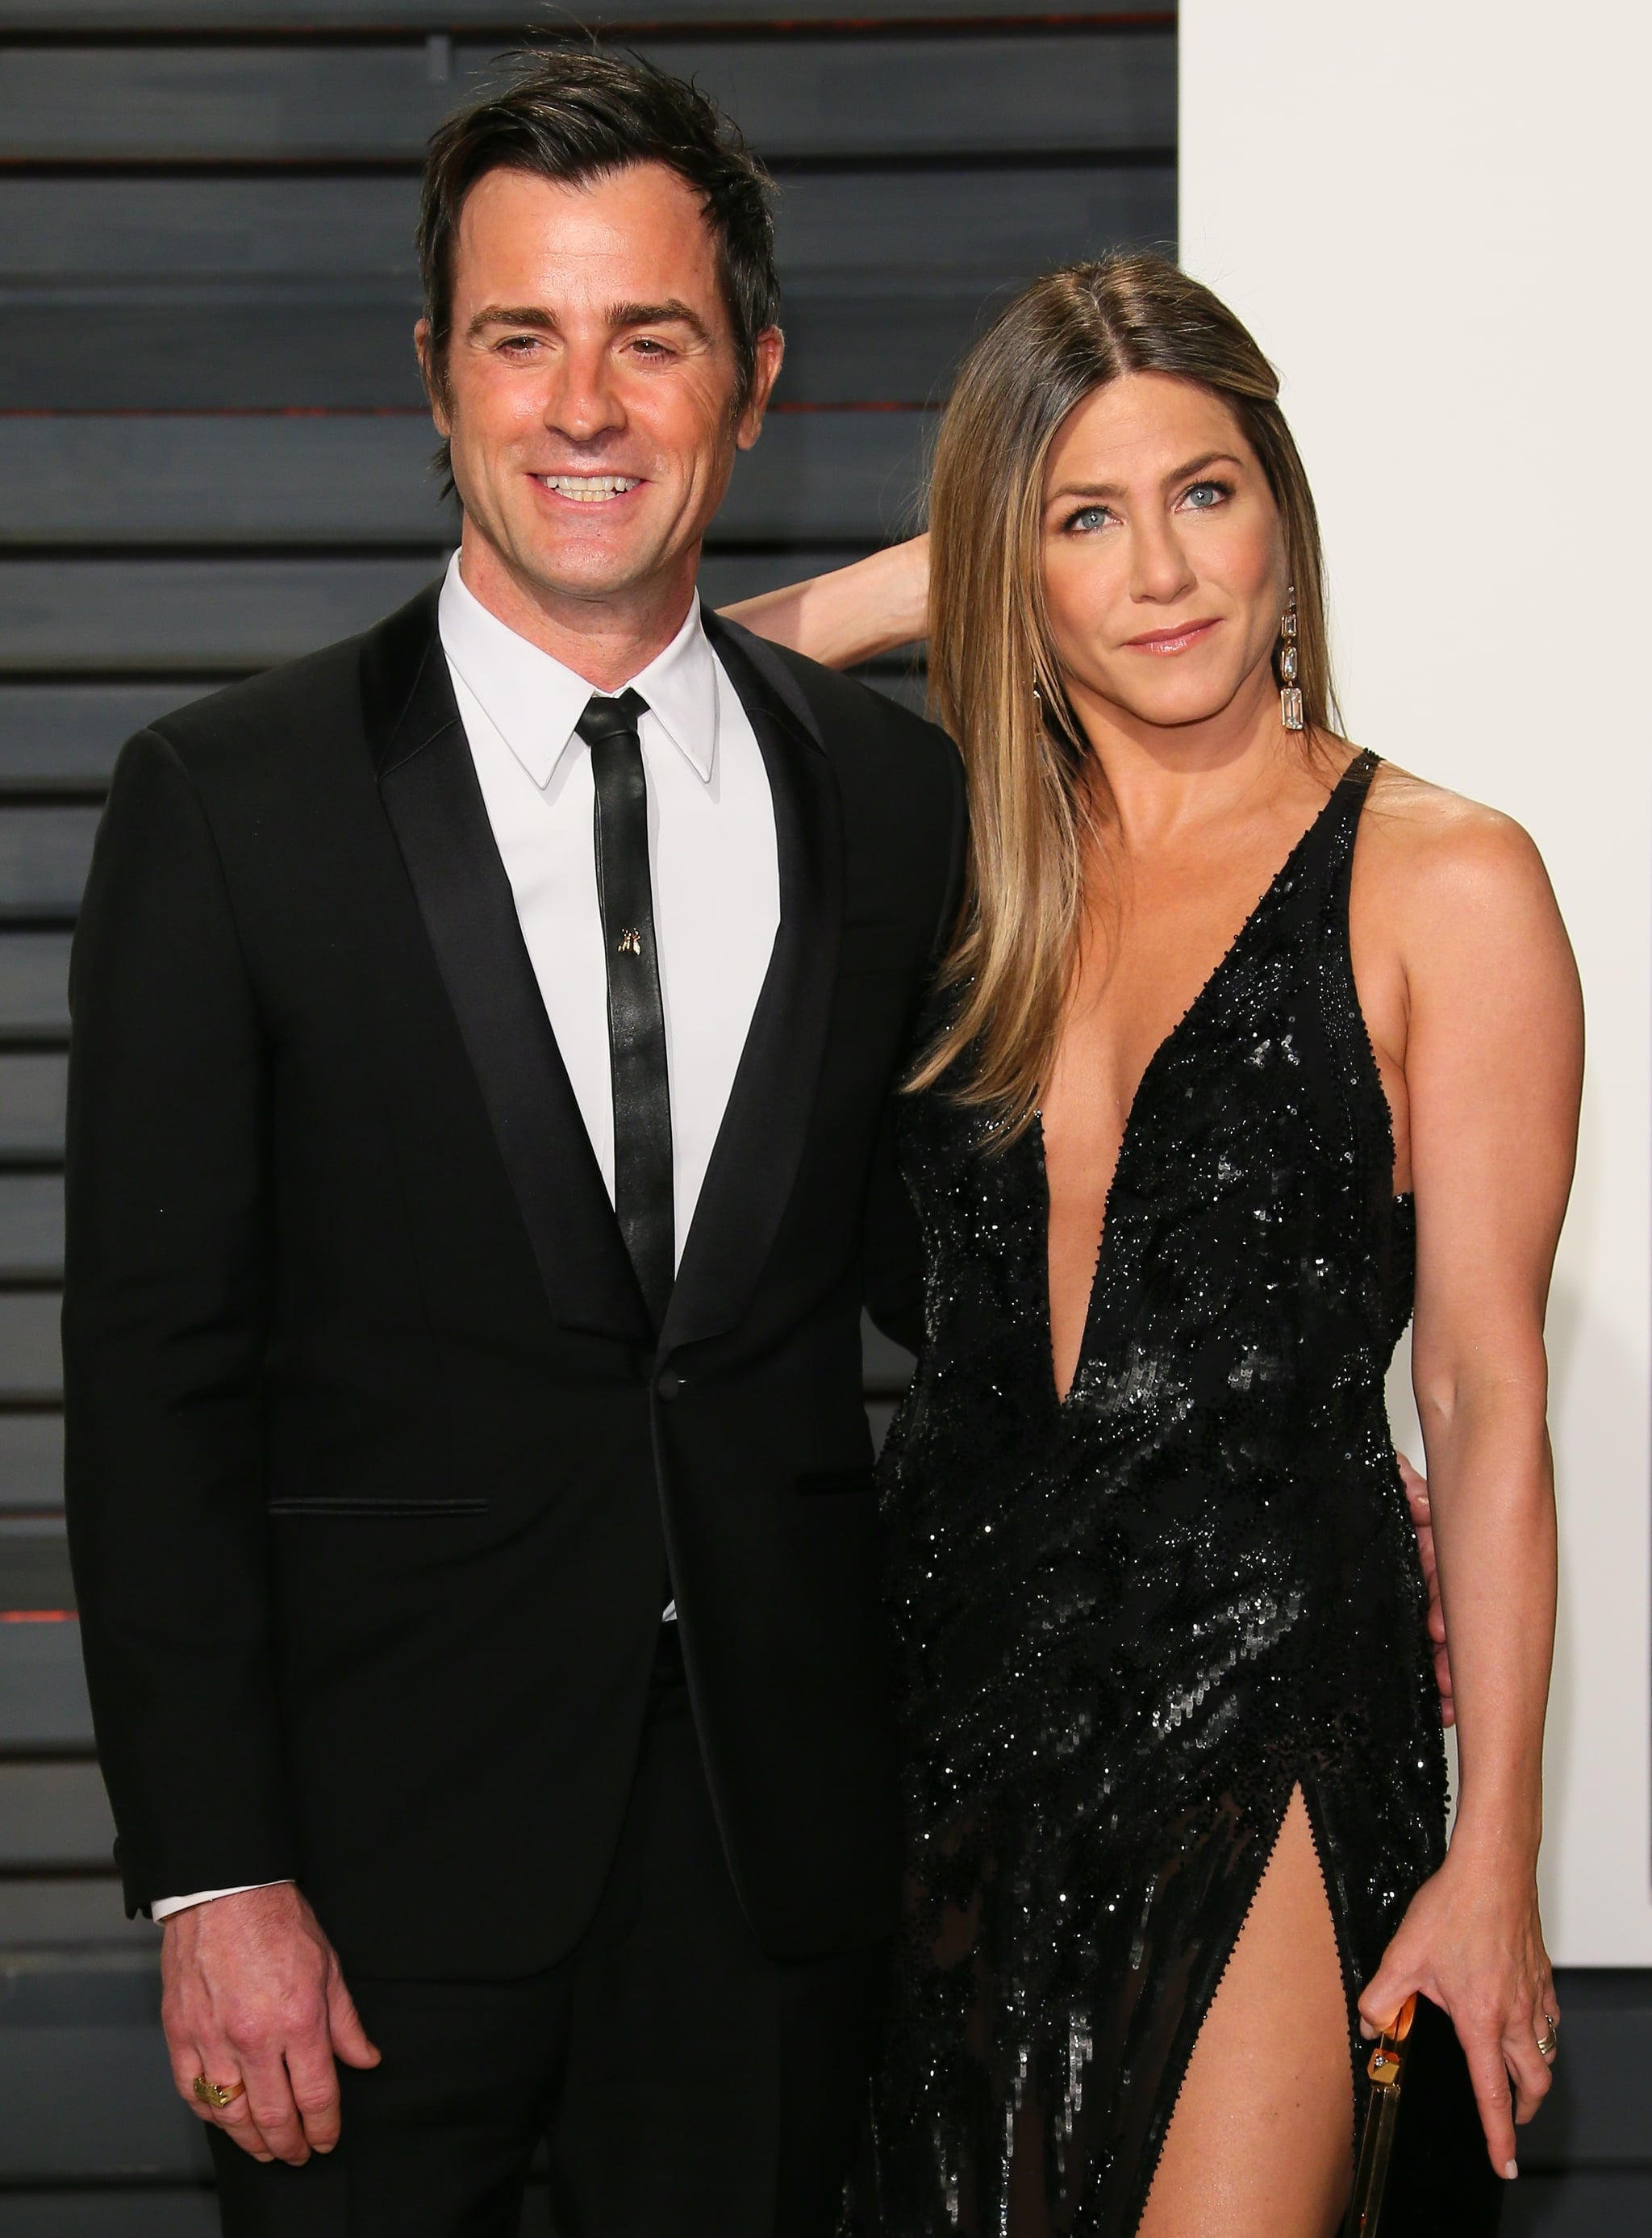 BEVERLY HILLS, CA - FEBRUARY 26: Jennifer Aniston and Justin Theroux attend the 2017 Vanity Fair Oscar Party hosted by Graydon Carter at Wallis Annenberg Centre for the Performing Arts on February 26, 2017 in Beverly Hills, California. (Photo by JB Lacroix/WireImage)